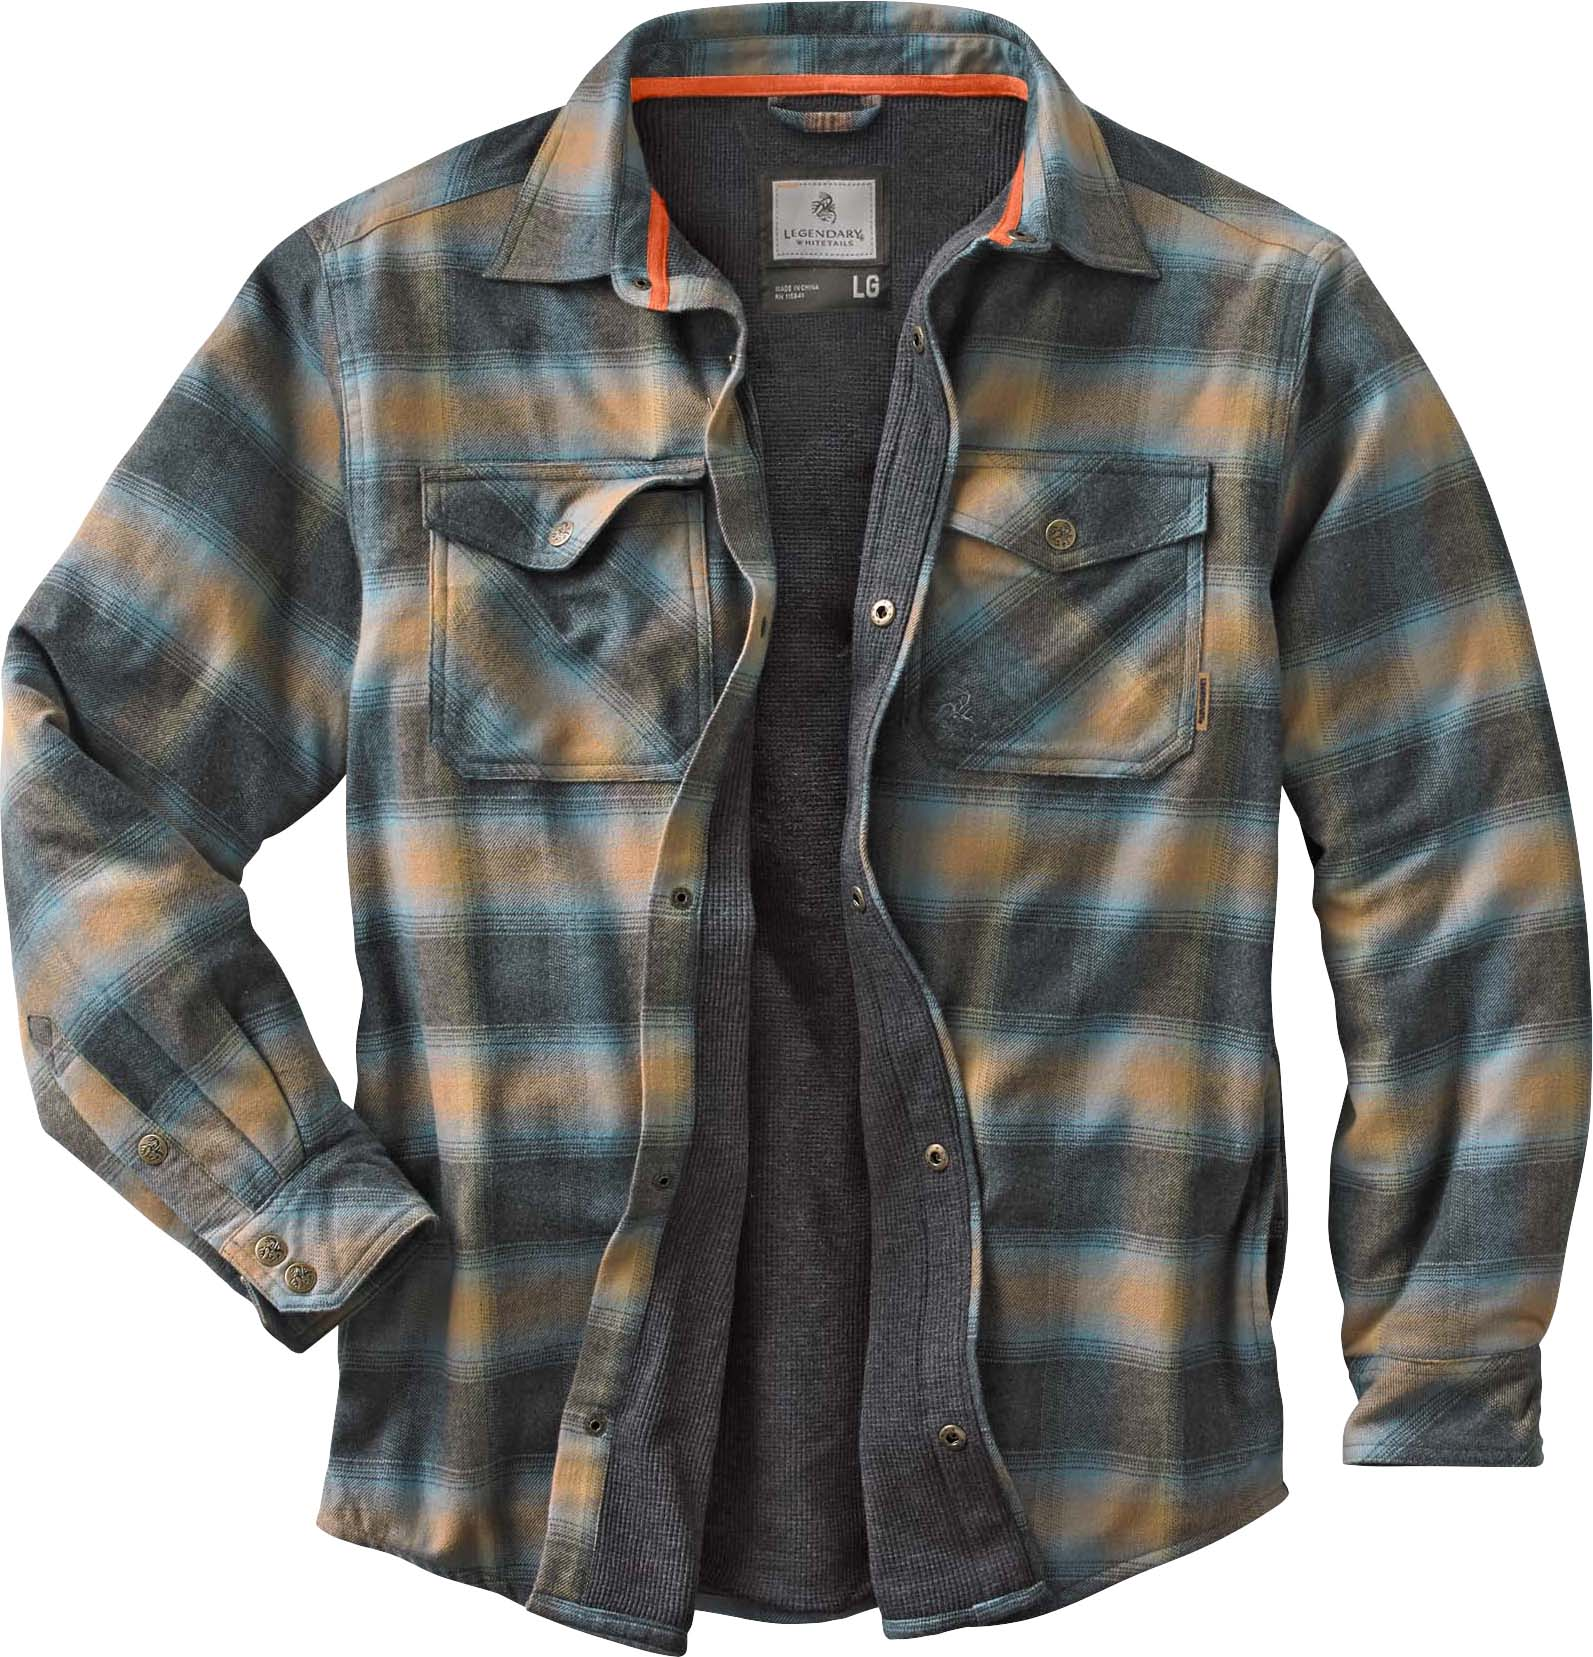 Men s Archer Thermal Lined Flannel Shirt Jacket ... 8f81fd5810a